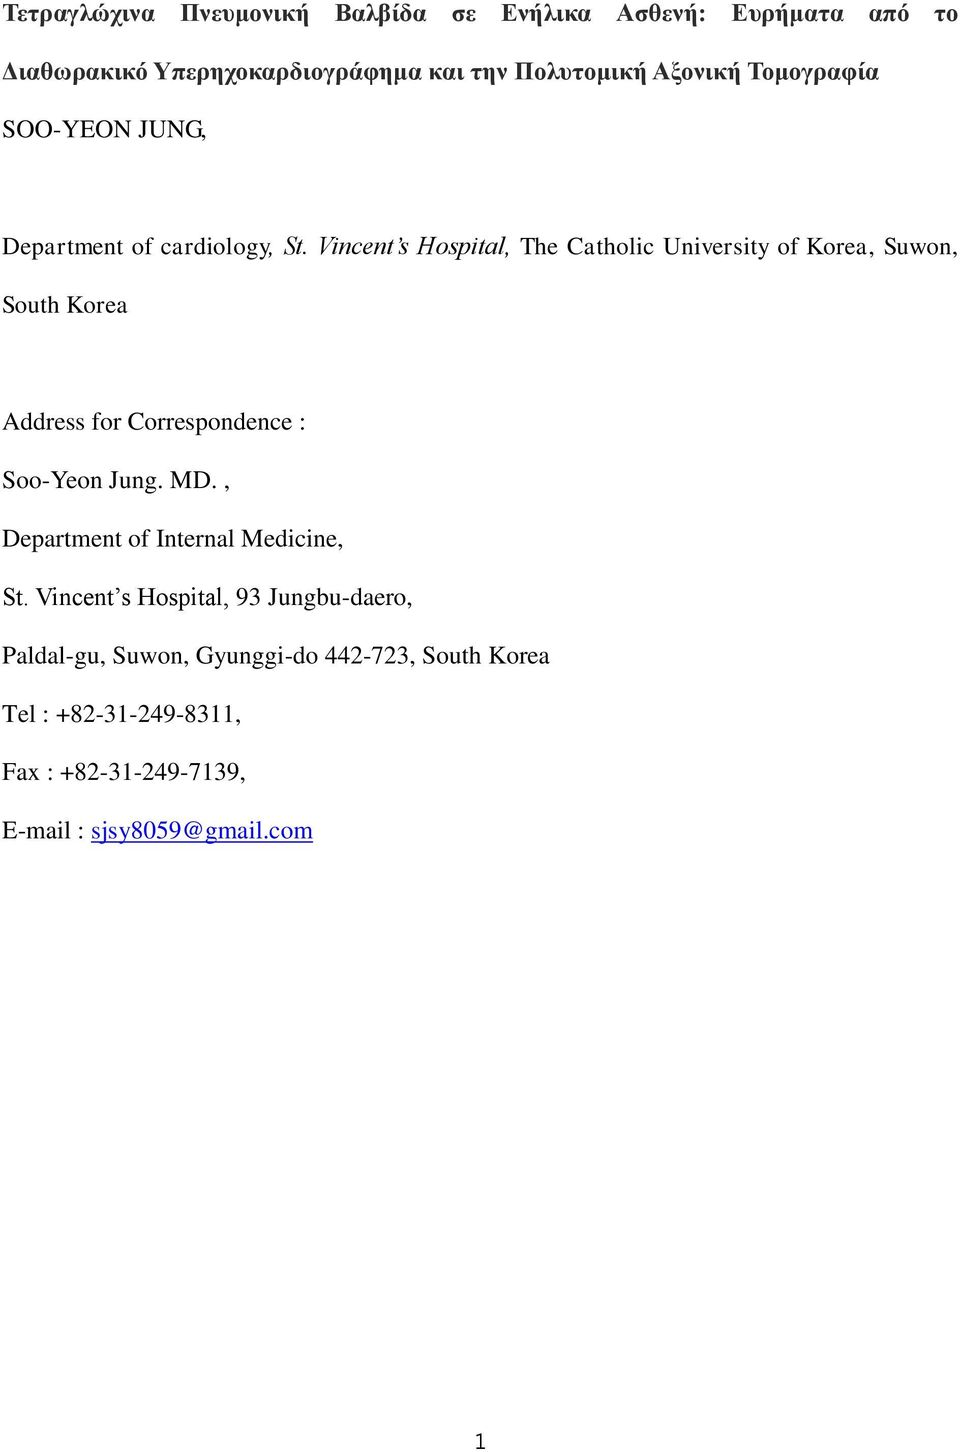 Vincent s Hospital, The Catholic University of Korea, Suwon, South Korea Address for Correspondence : Soo-Yeon Jung. MD.